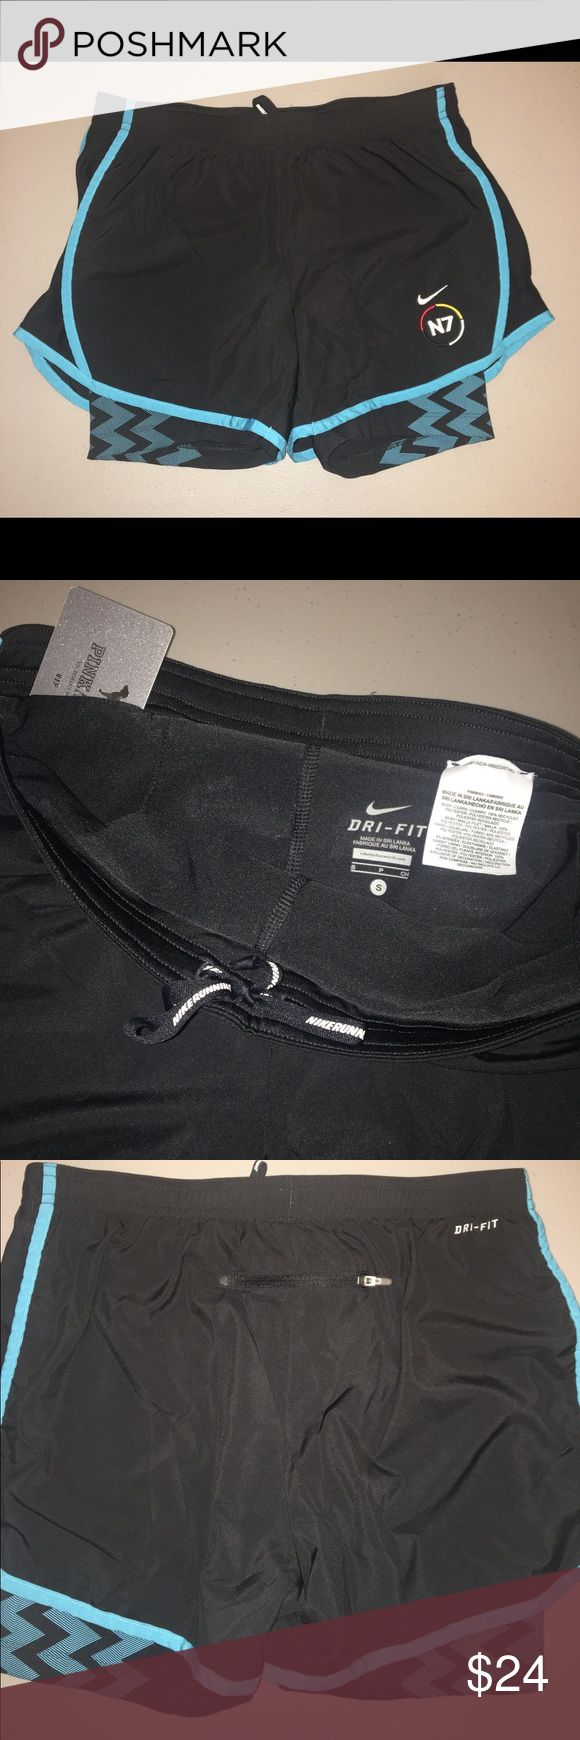 Nike N7 3.5 2 in 1 Tempo Compression Shorts sz SM Nike N7 3.5 2 in 1 Tempo Compression Shorts Women's size Small Black, Blue #574082-010 Dri-Fit Elastic waist Stretch Inner drawstrings for more security Internal pocket for small items Outside back zip pocket Very good pre-owned condition Nike Shorts